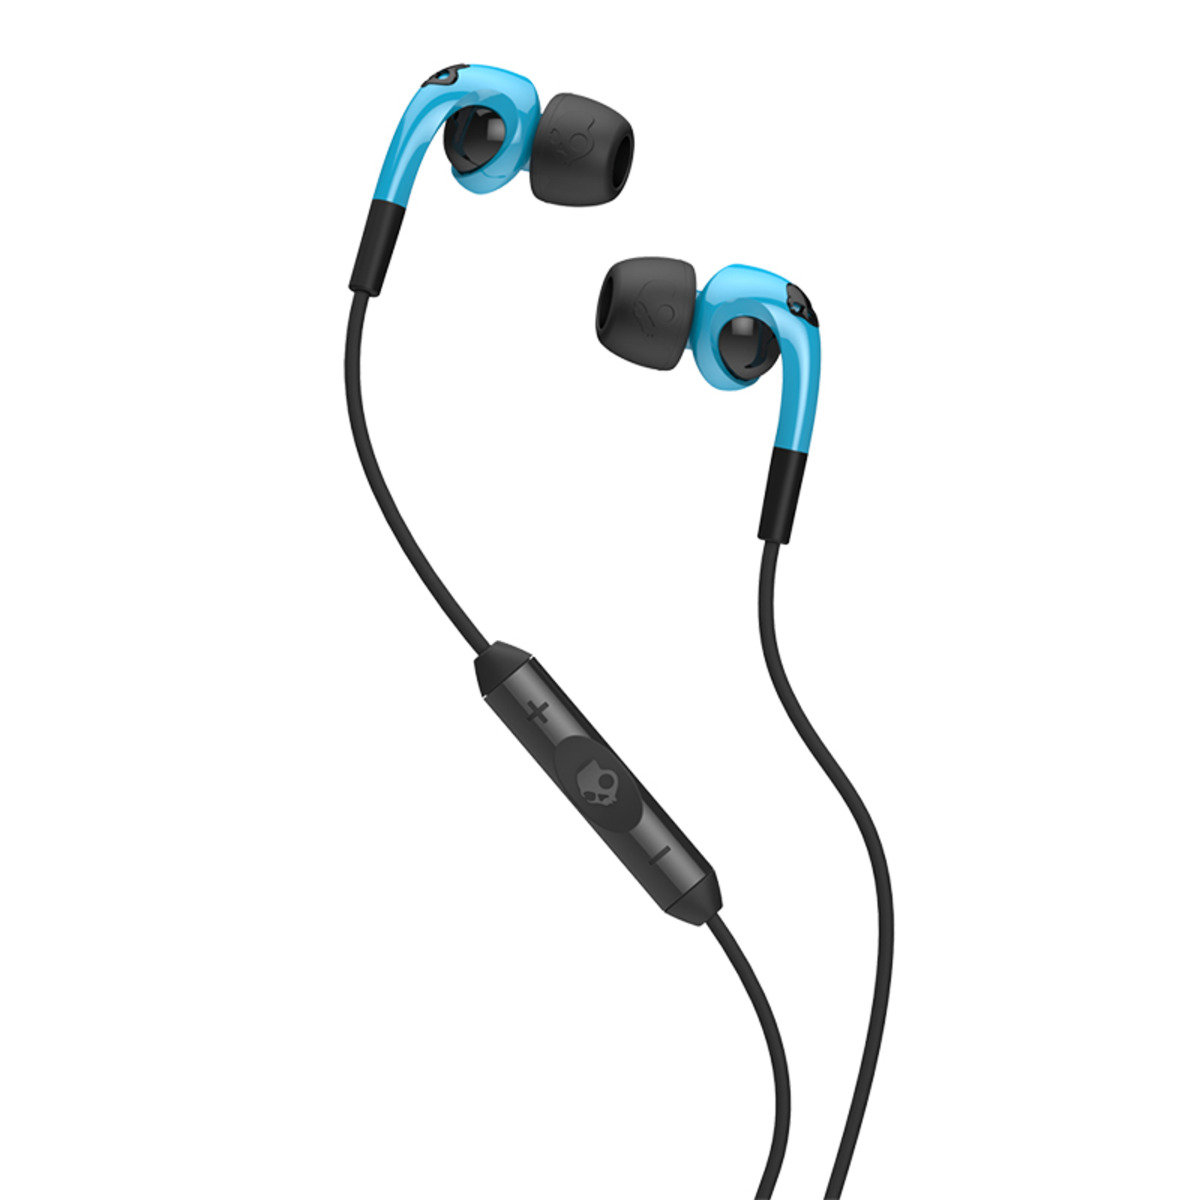 FIX In Ear Hot Blue/Black w/ Mic3